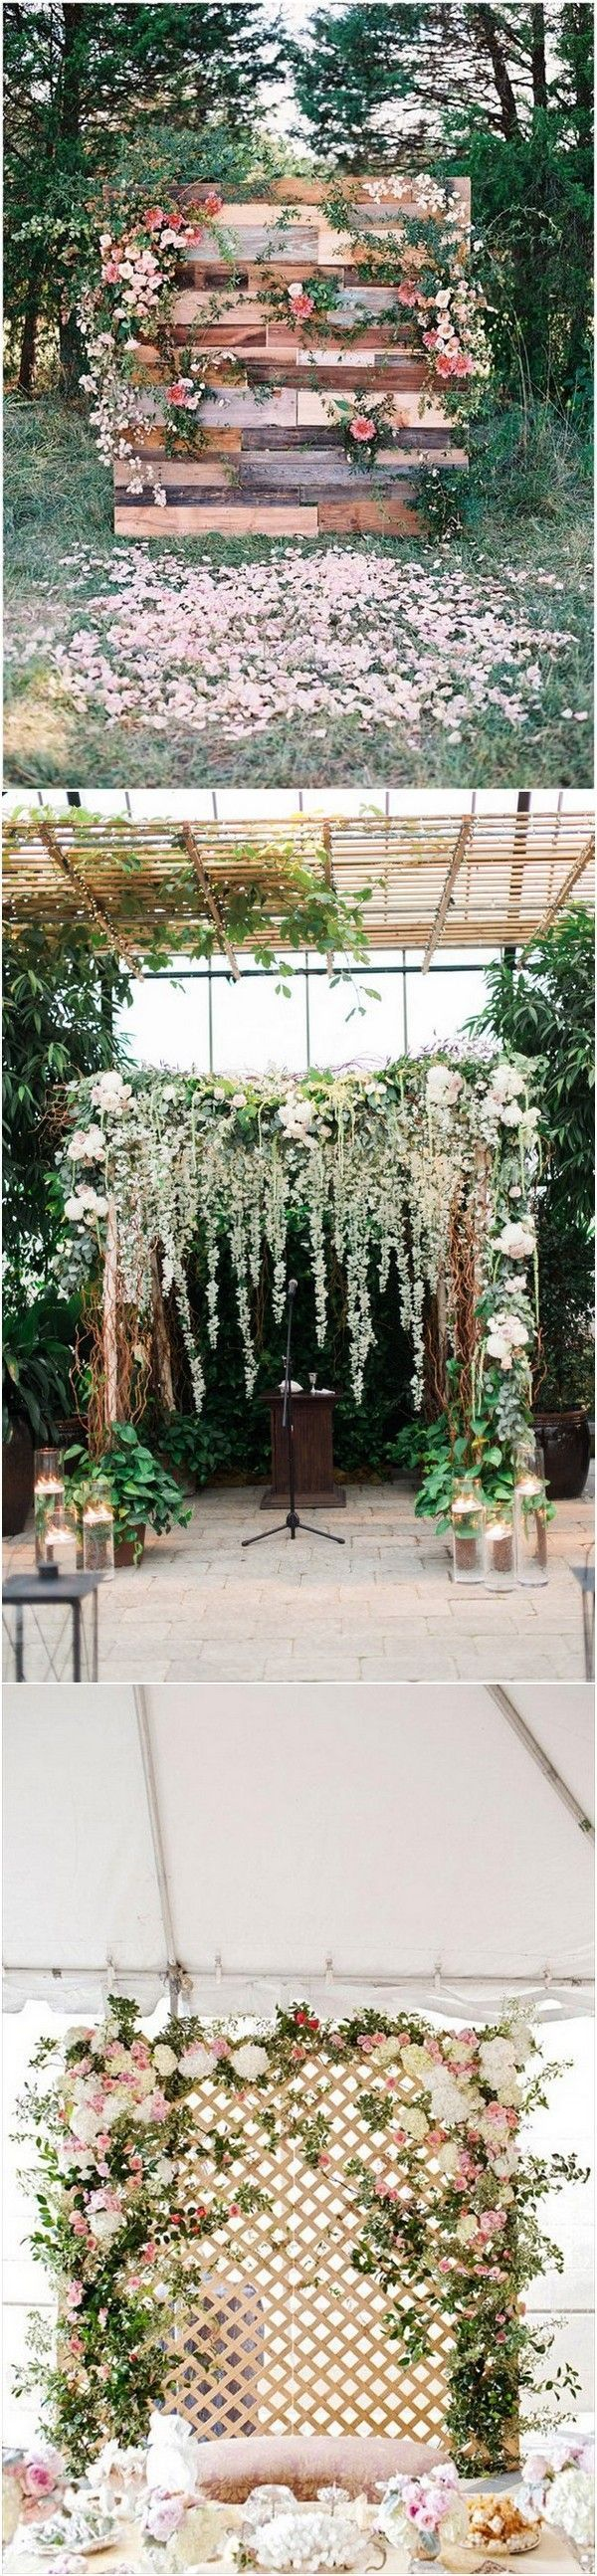 Flower wall wedding backdrops for 2018 #wedding #weddingideas #weddingdecor